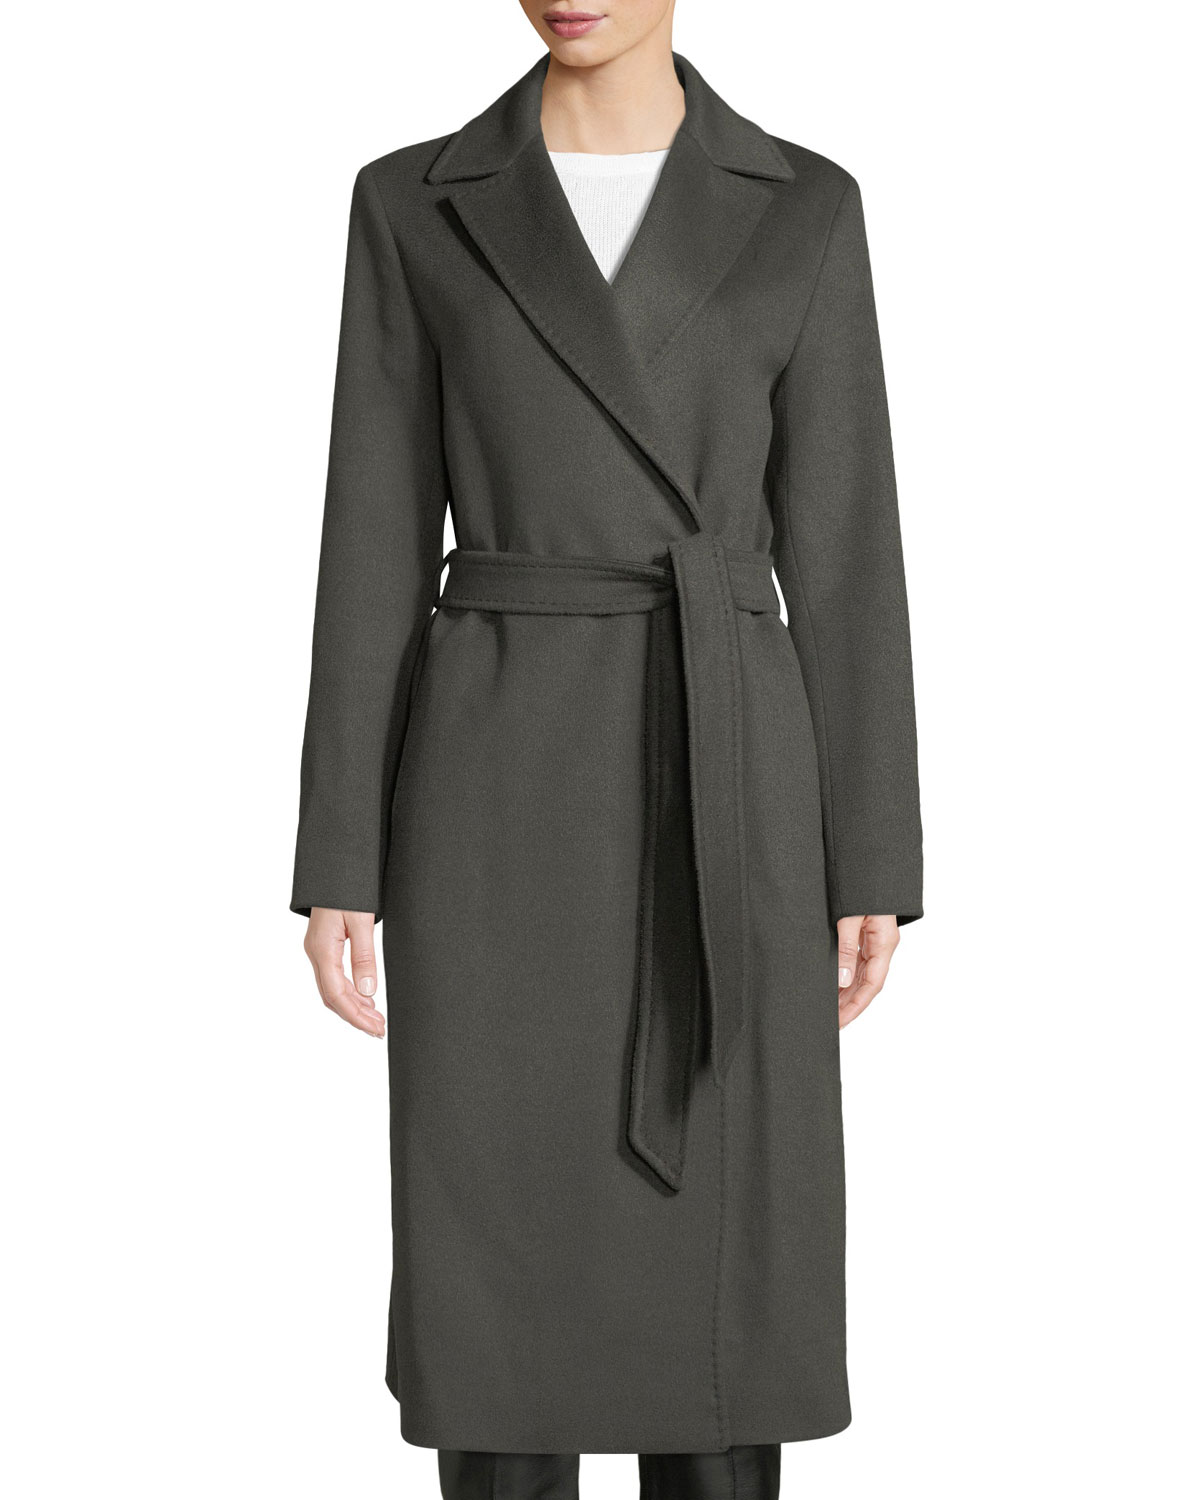 CINZIA ROCCA SINGLE-BREASTED BELTED WOOL WRAP COAT